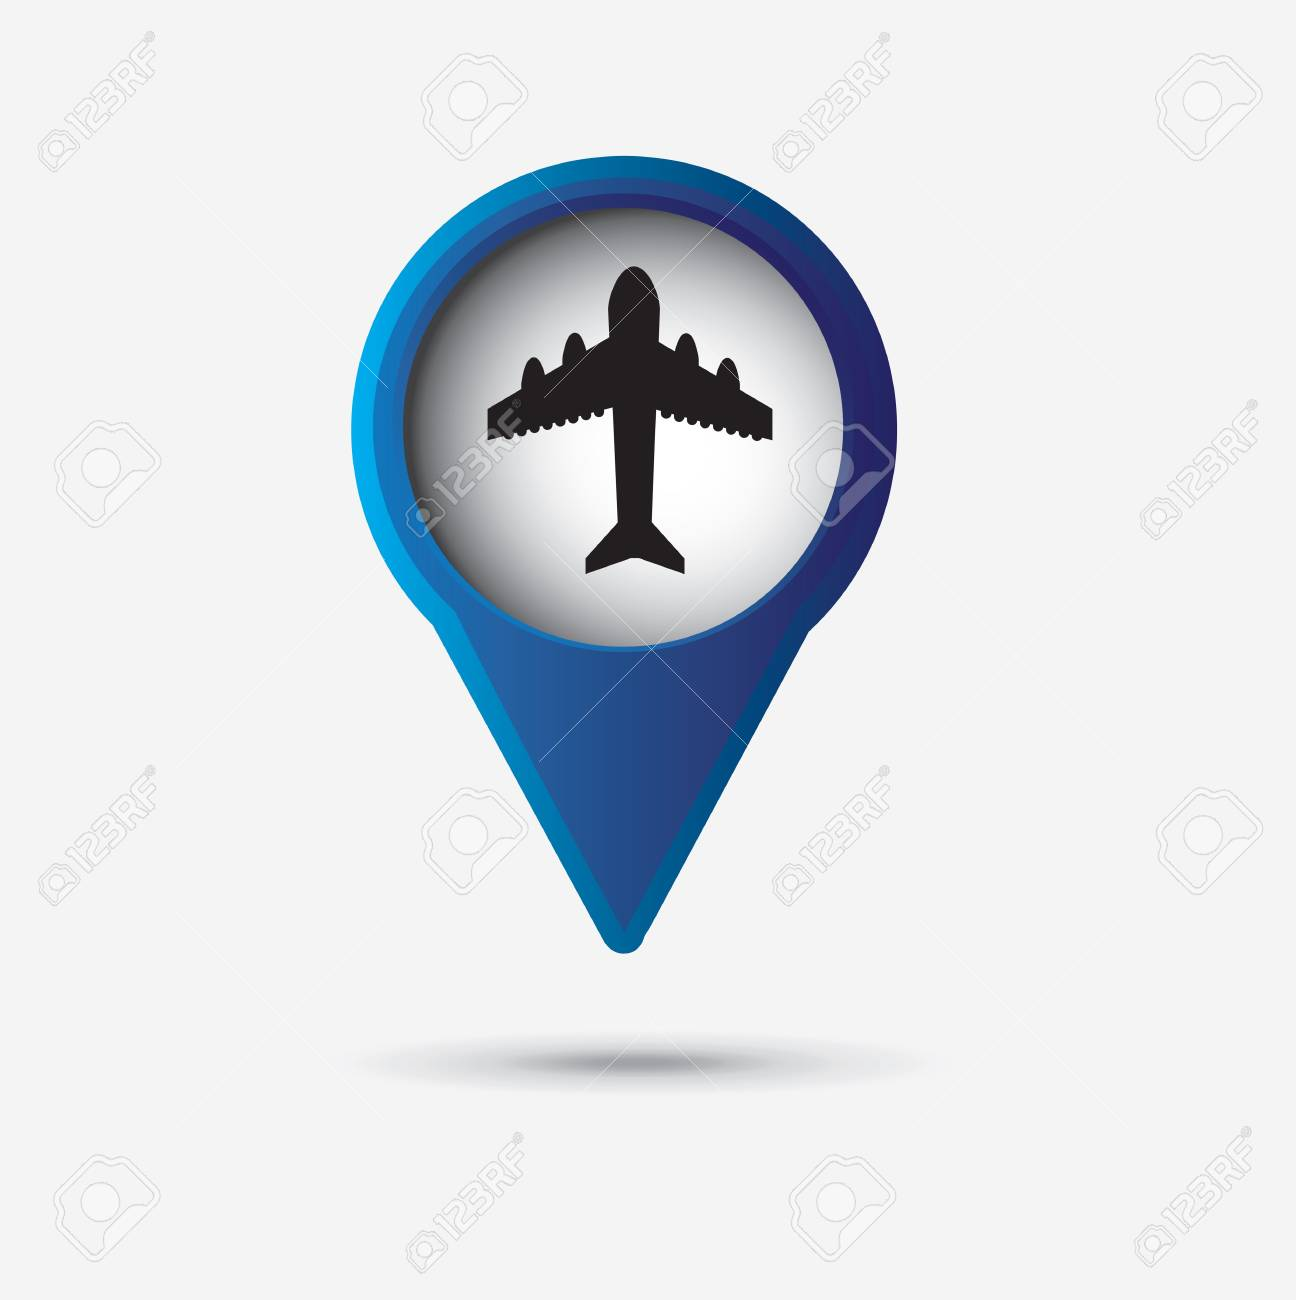 plane icon over gray background illustration Stock Vector - 19674032